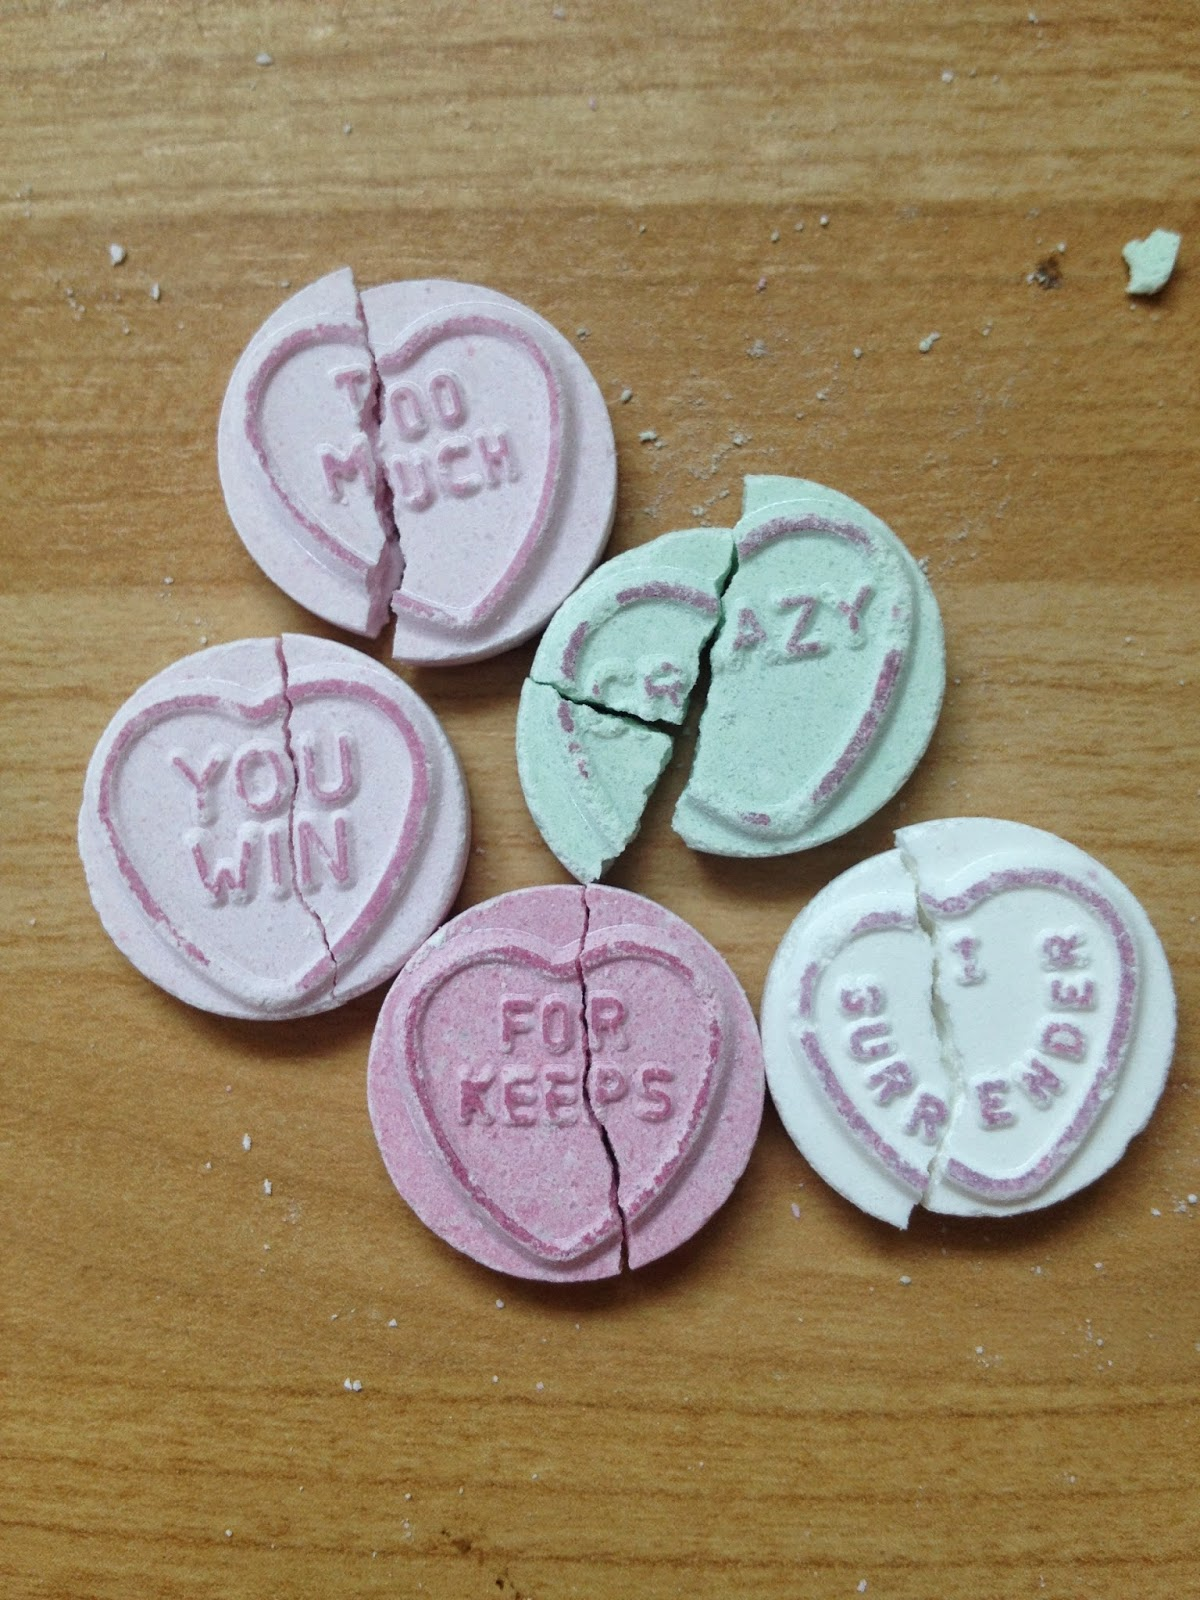 Broken Love Hearts representing domestic abuse